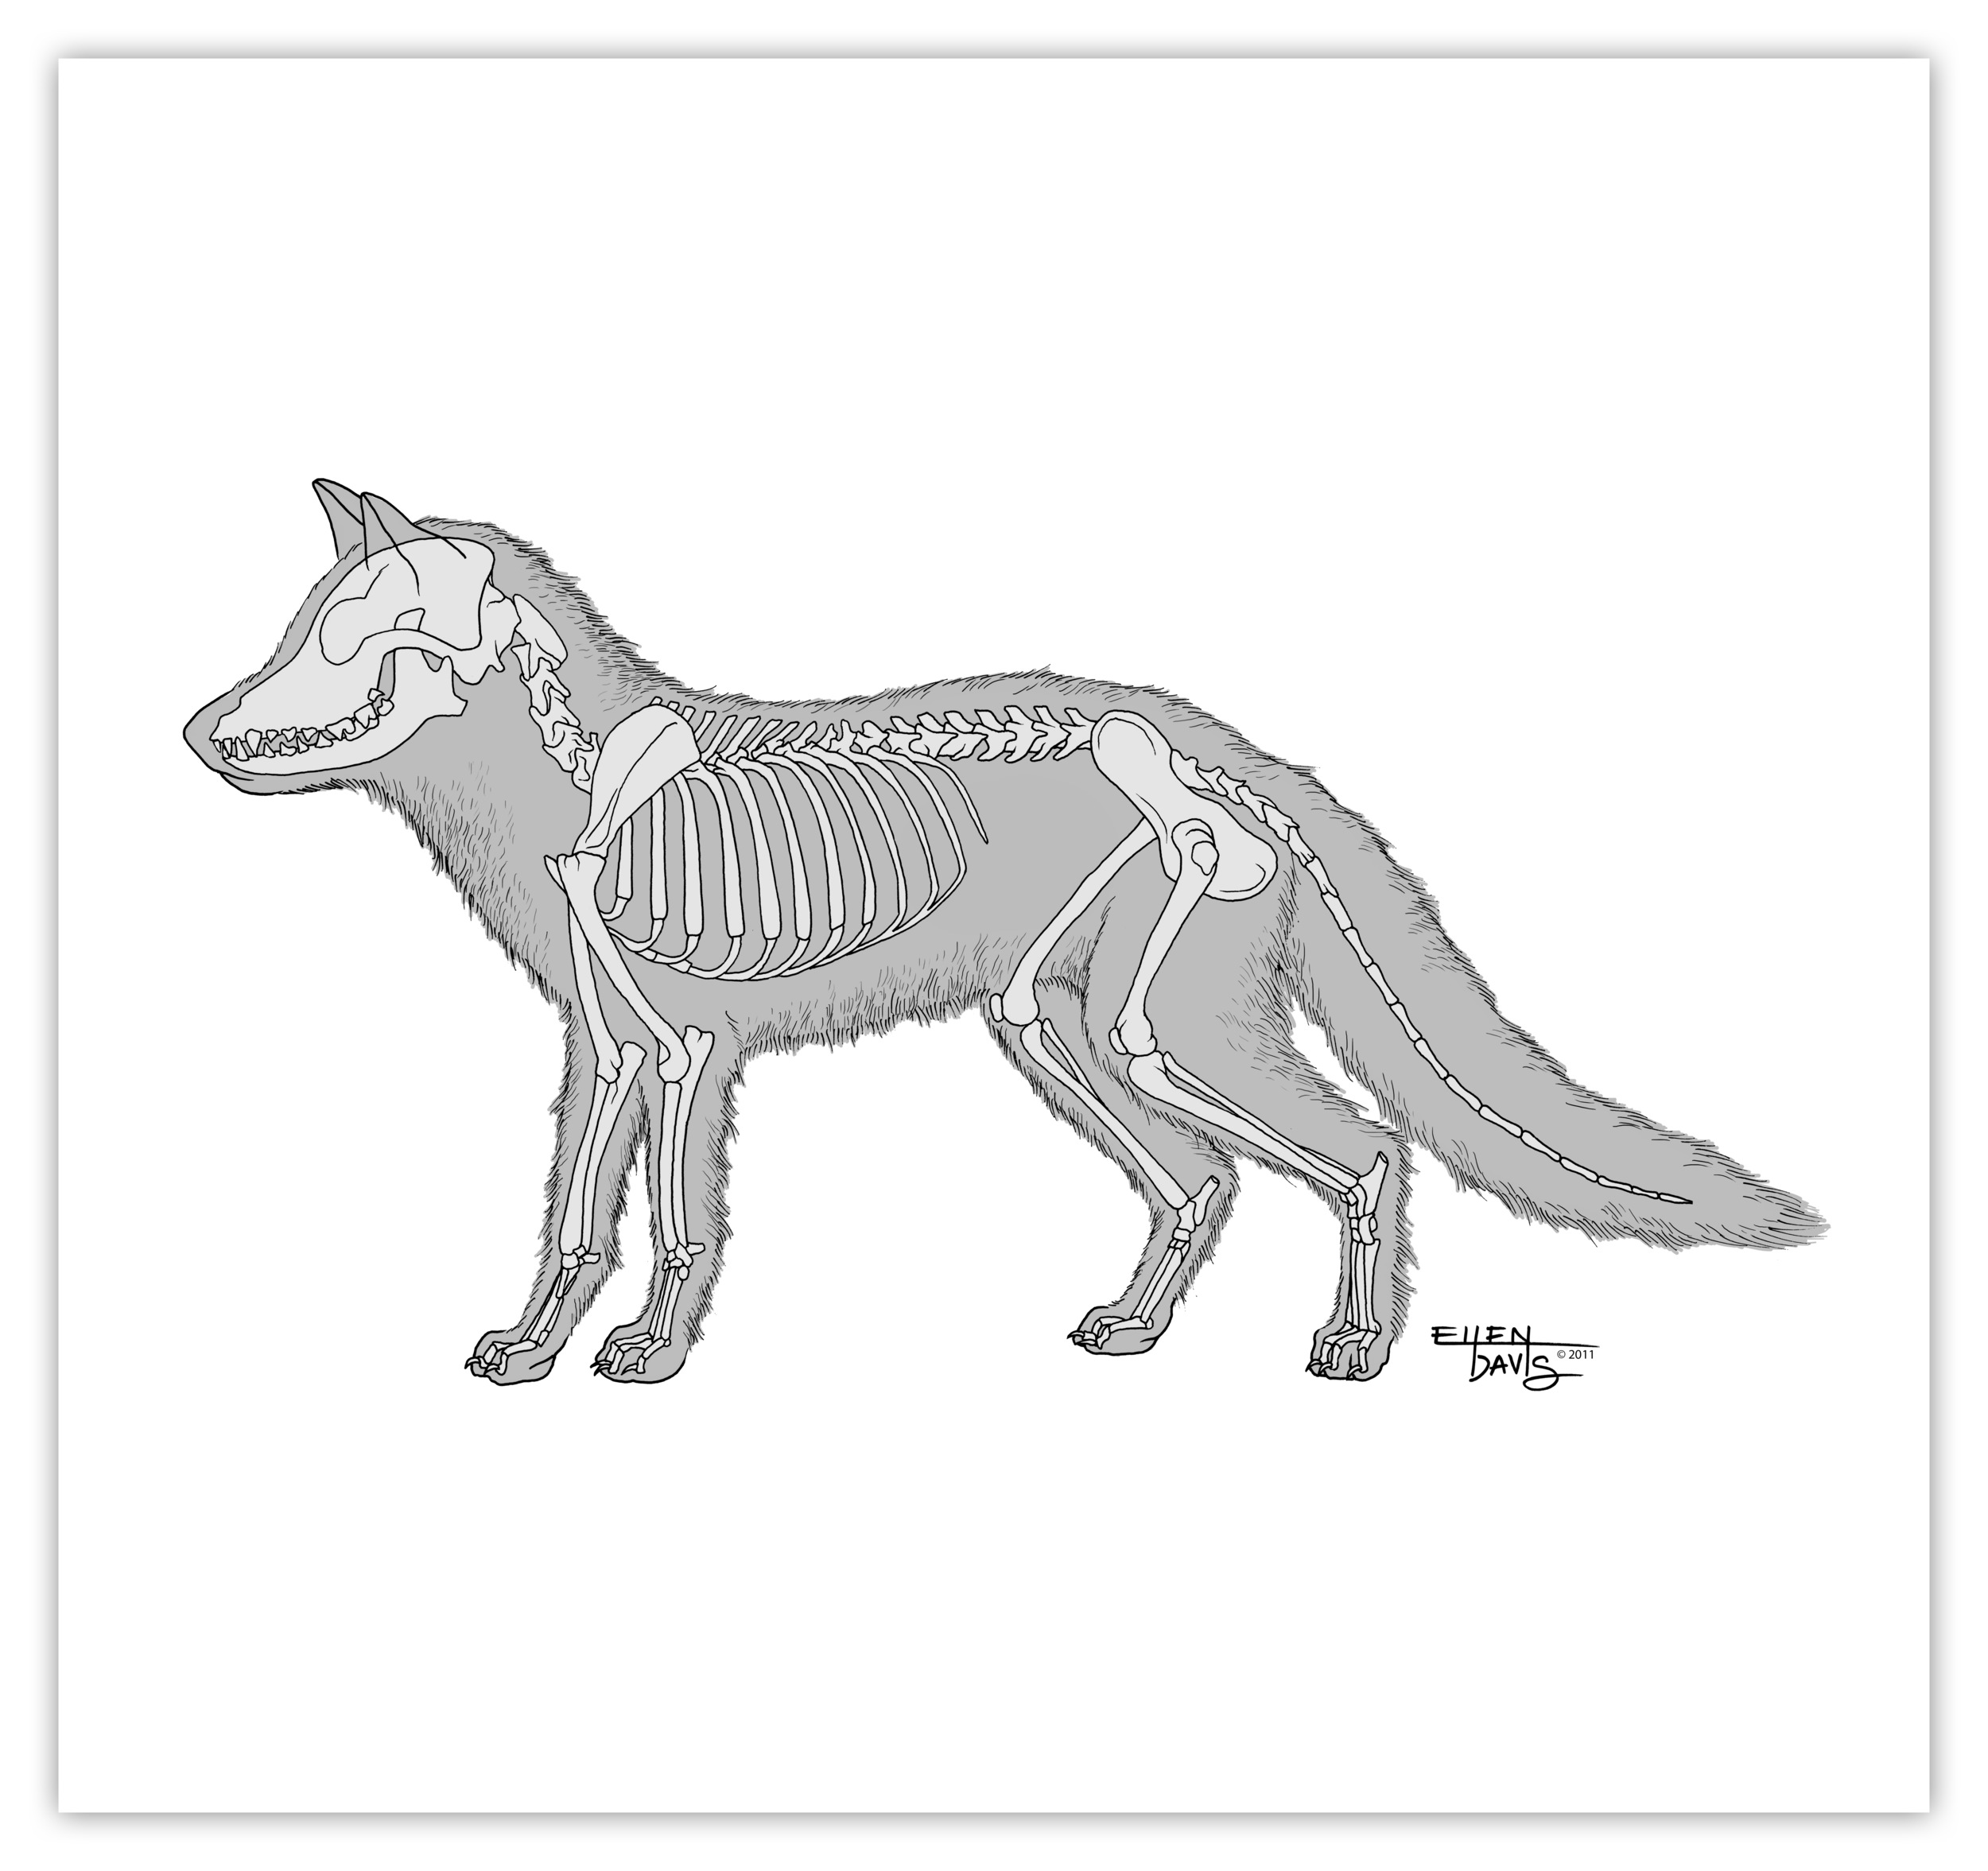 Skeletal Anatomy of the Fox   Medium:  Technical Pen, Illustrator, & Photoshop  Objective:  To provide lay readers an overview of the fox's skeletal anatomy as part of a larger series on fox hunting and trapping.  © 2011 Ellen Davis